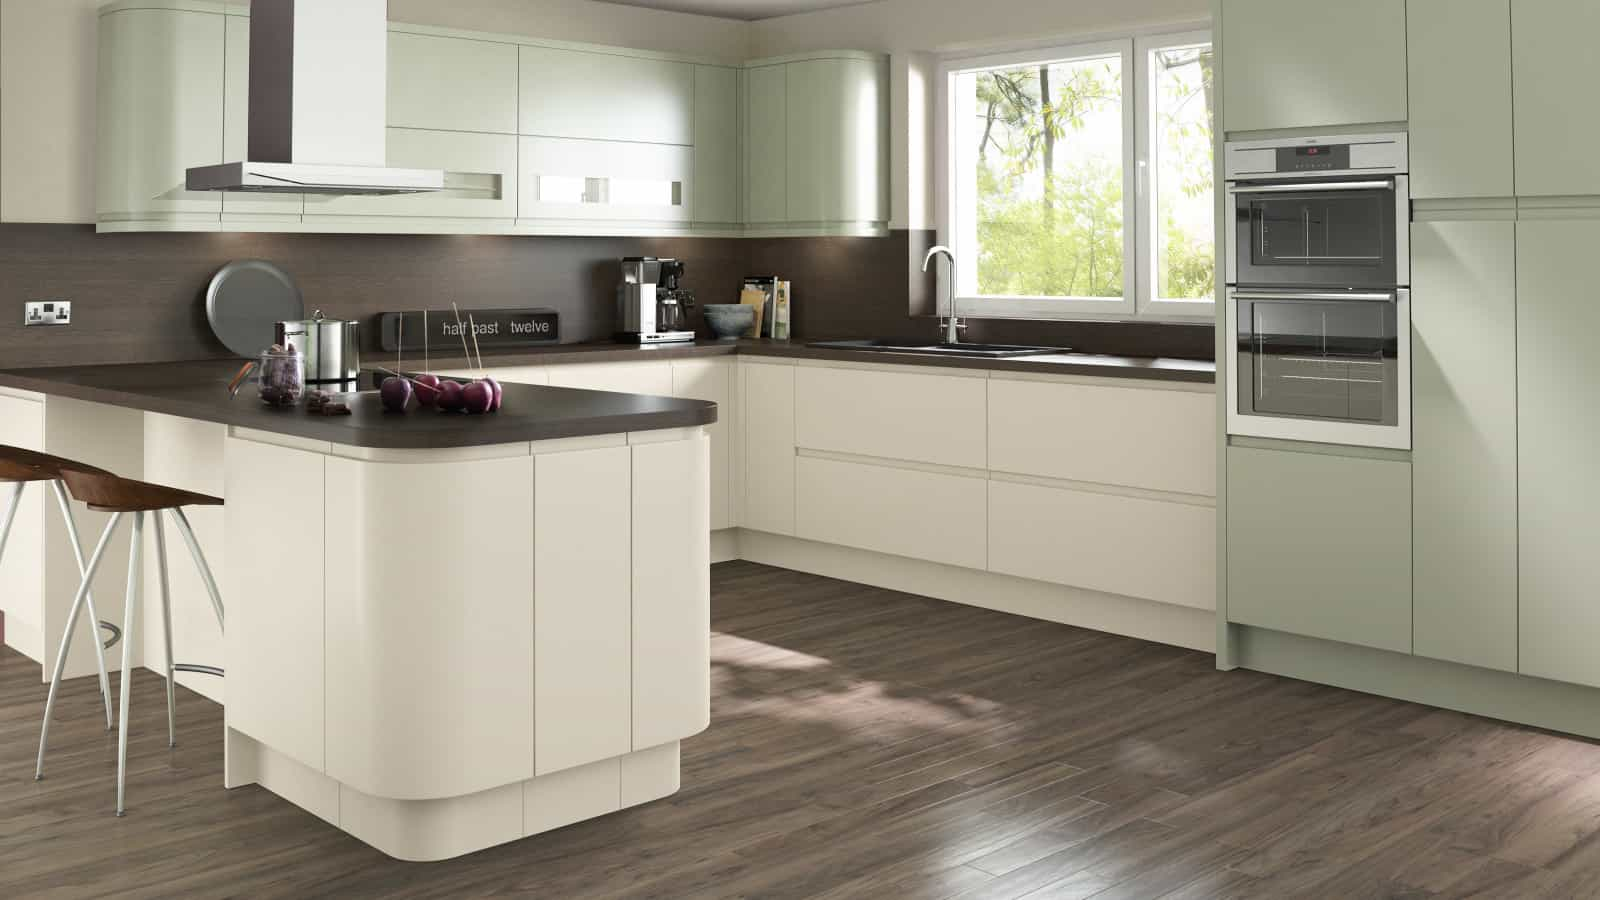 Kitchen Company Modern & Shaker Handleless Kitchens Designs | Ramsbottom ...